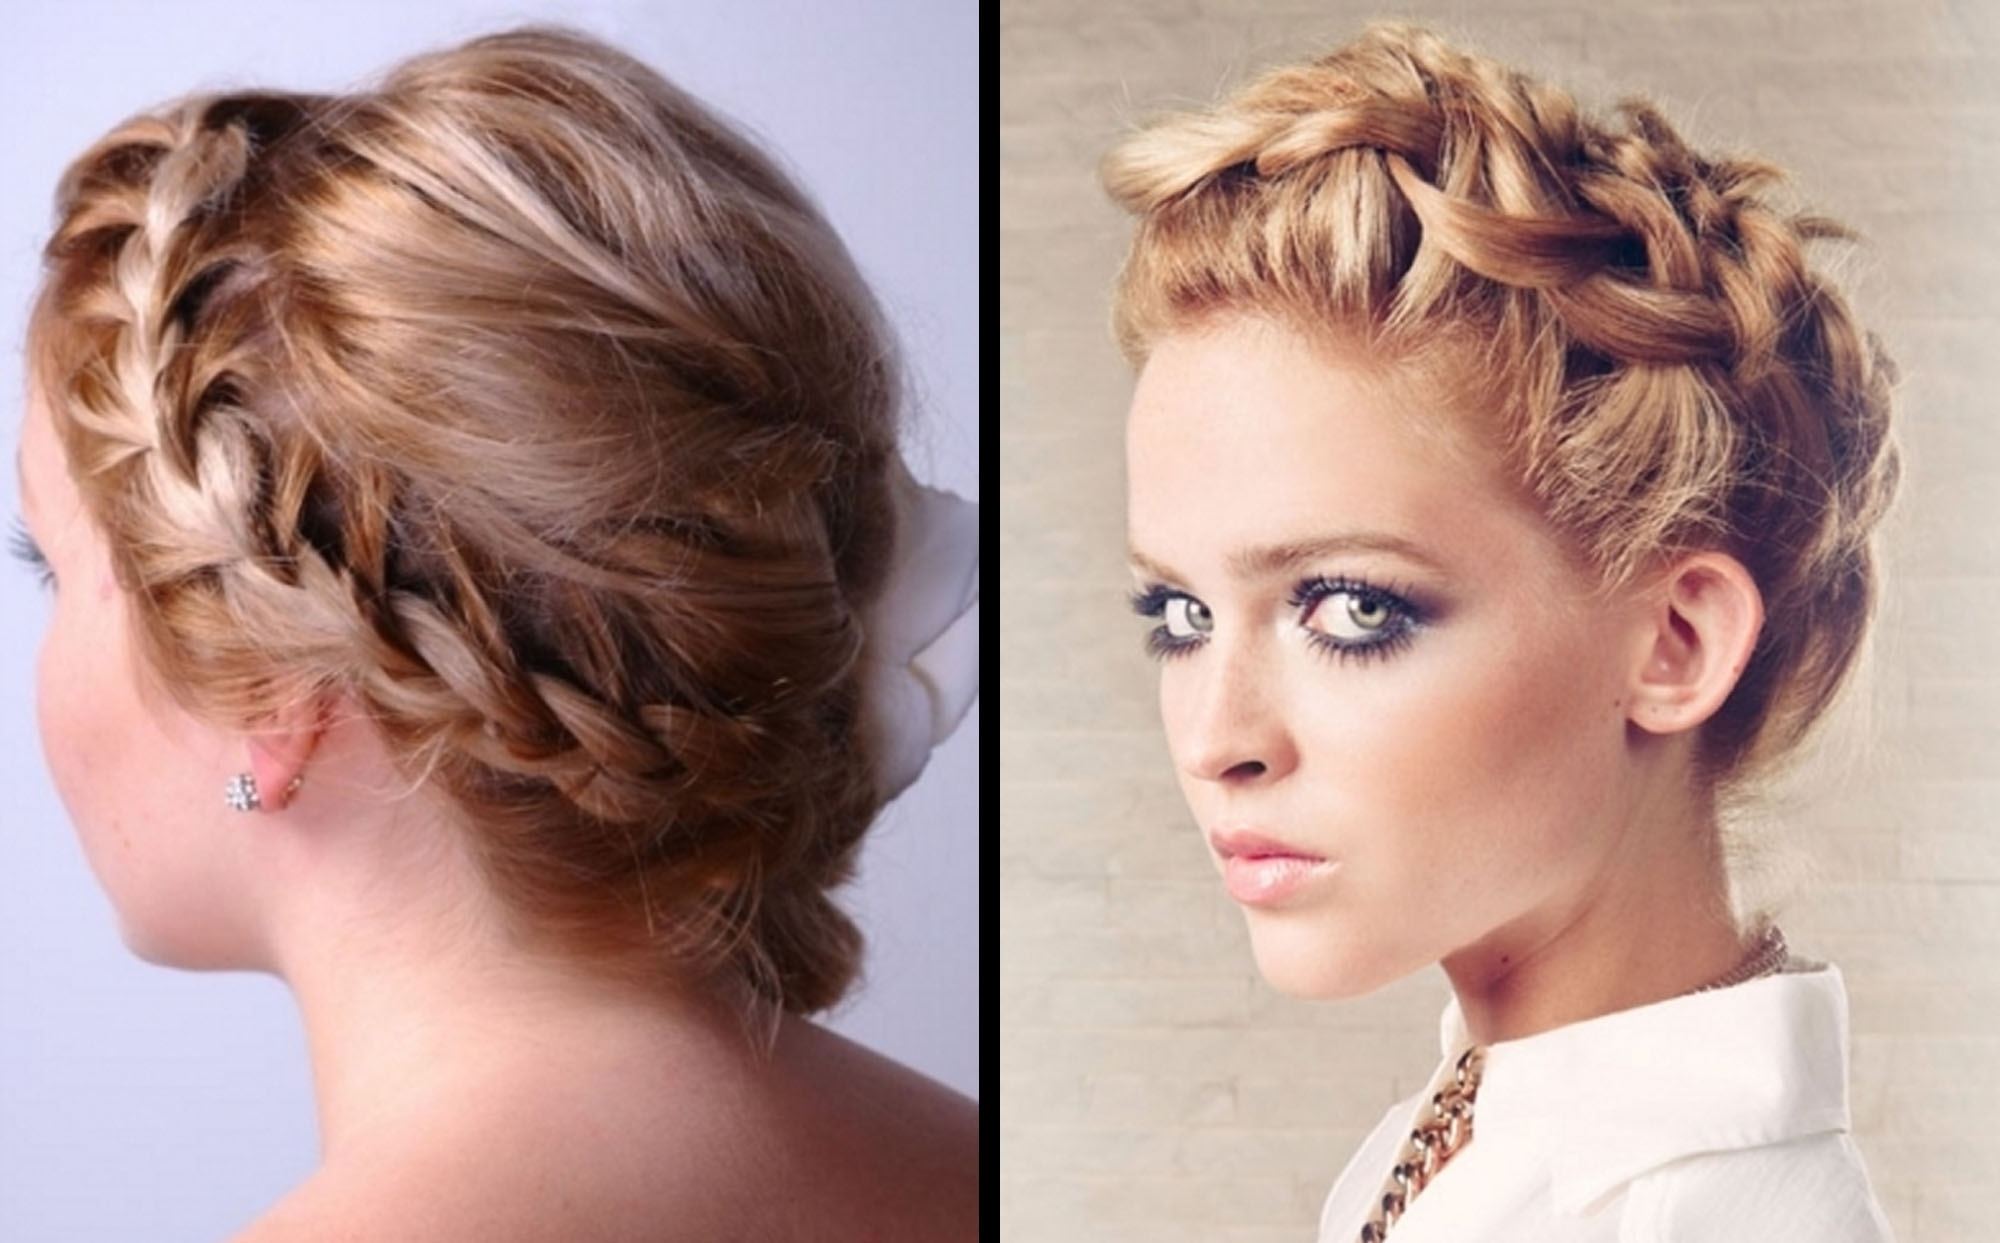 For Short Hair With Braids Cute Easy Updos For Short Hair A She Intended For Cute And Easy Updo Hairstyles For Short Hair (View 14 of 15)